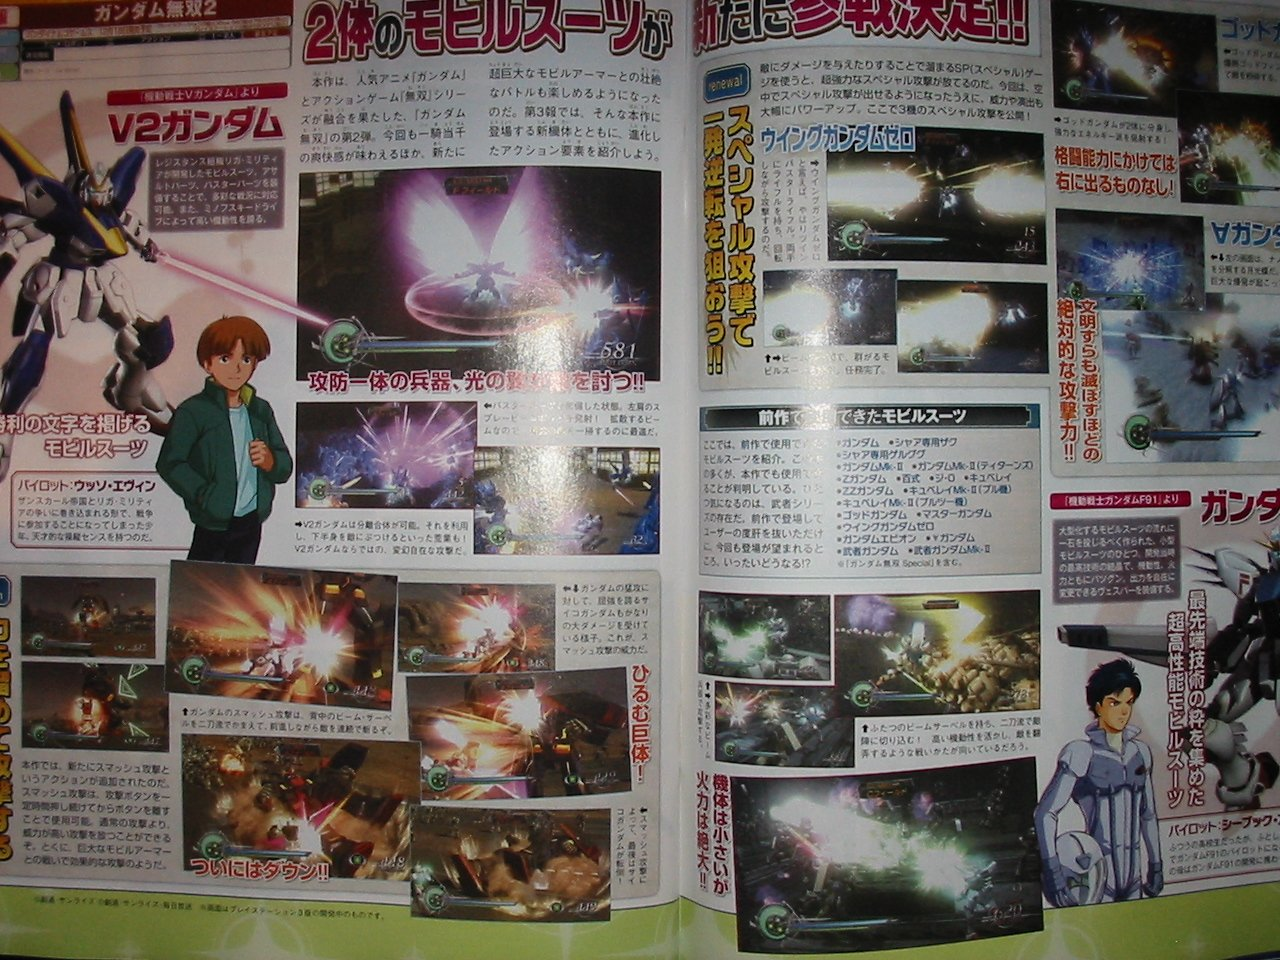 Famitsu this week features an eight-page spread on satoshi-mochida